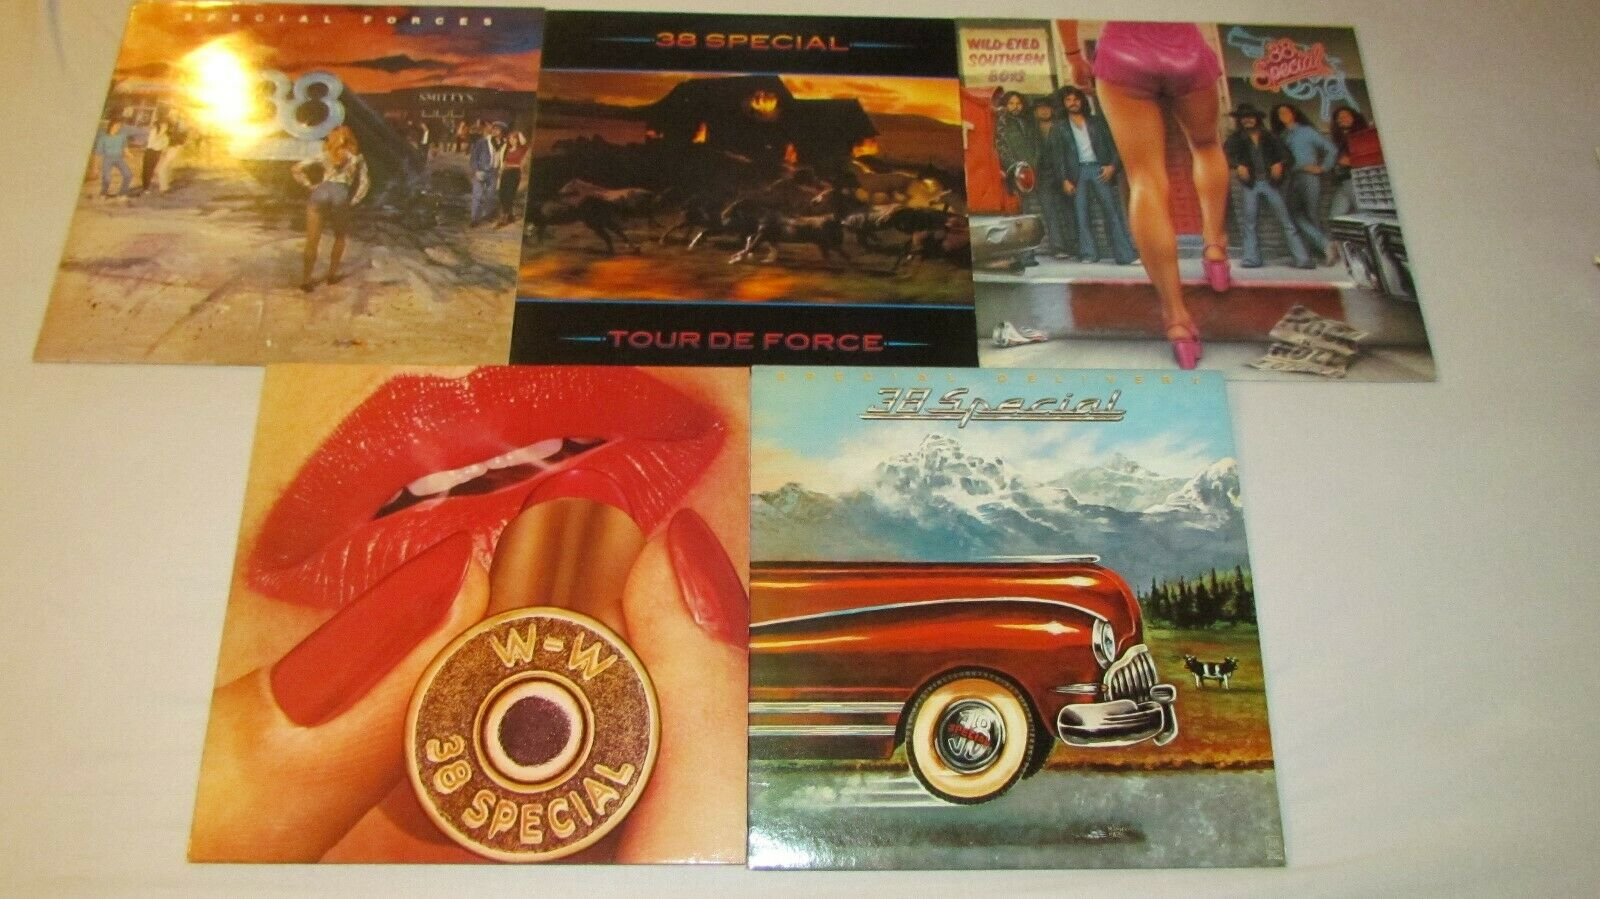 5x -38 Special - Special Forces,Delivery,Tour de Force,Rocking into the Night